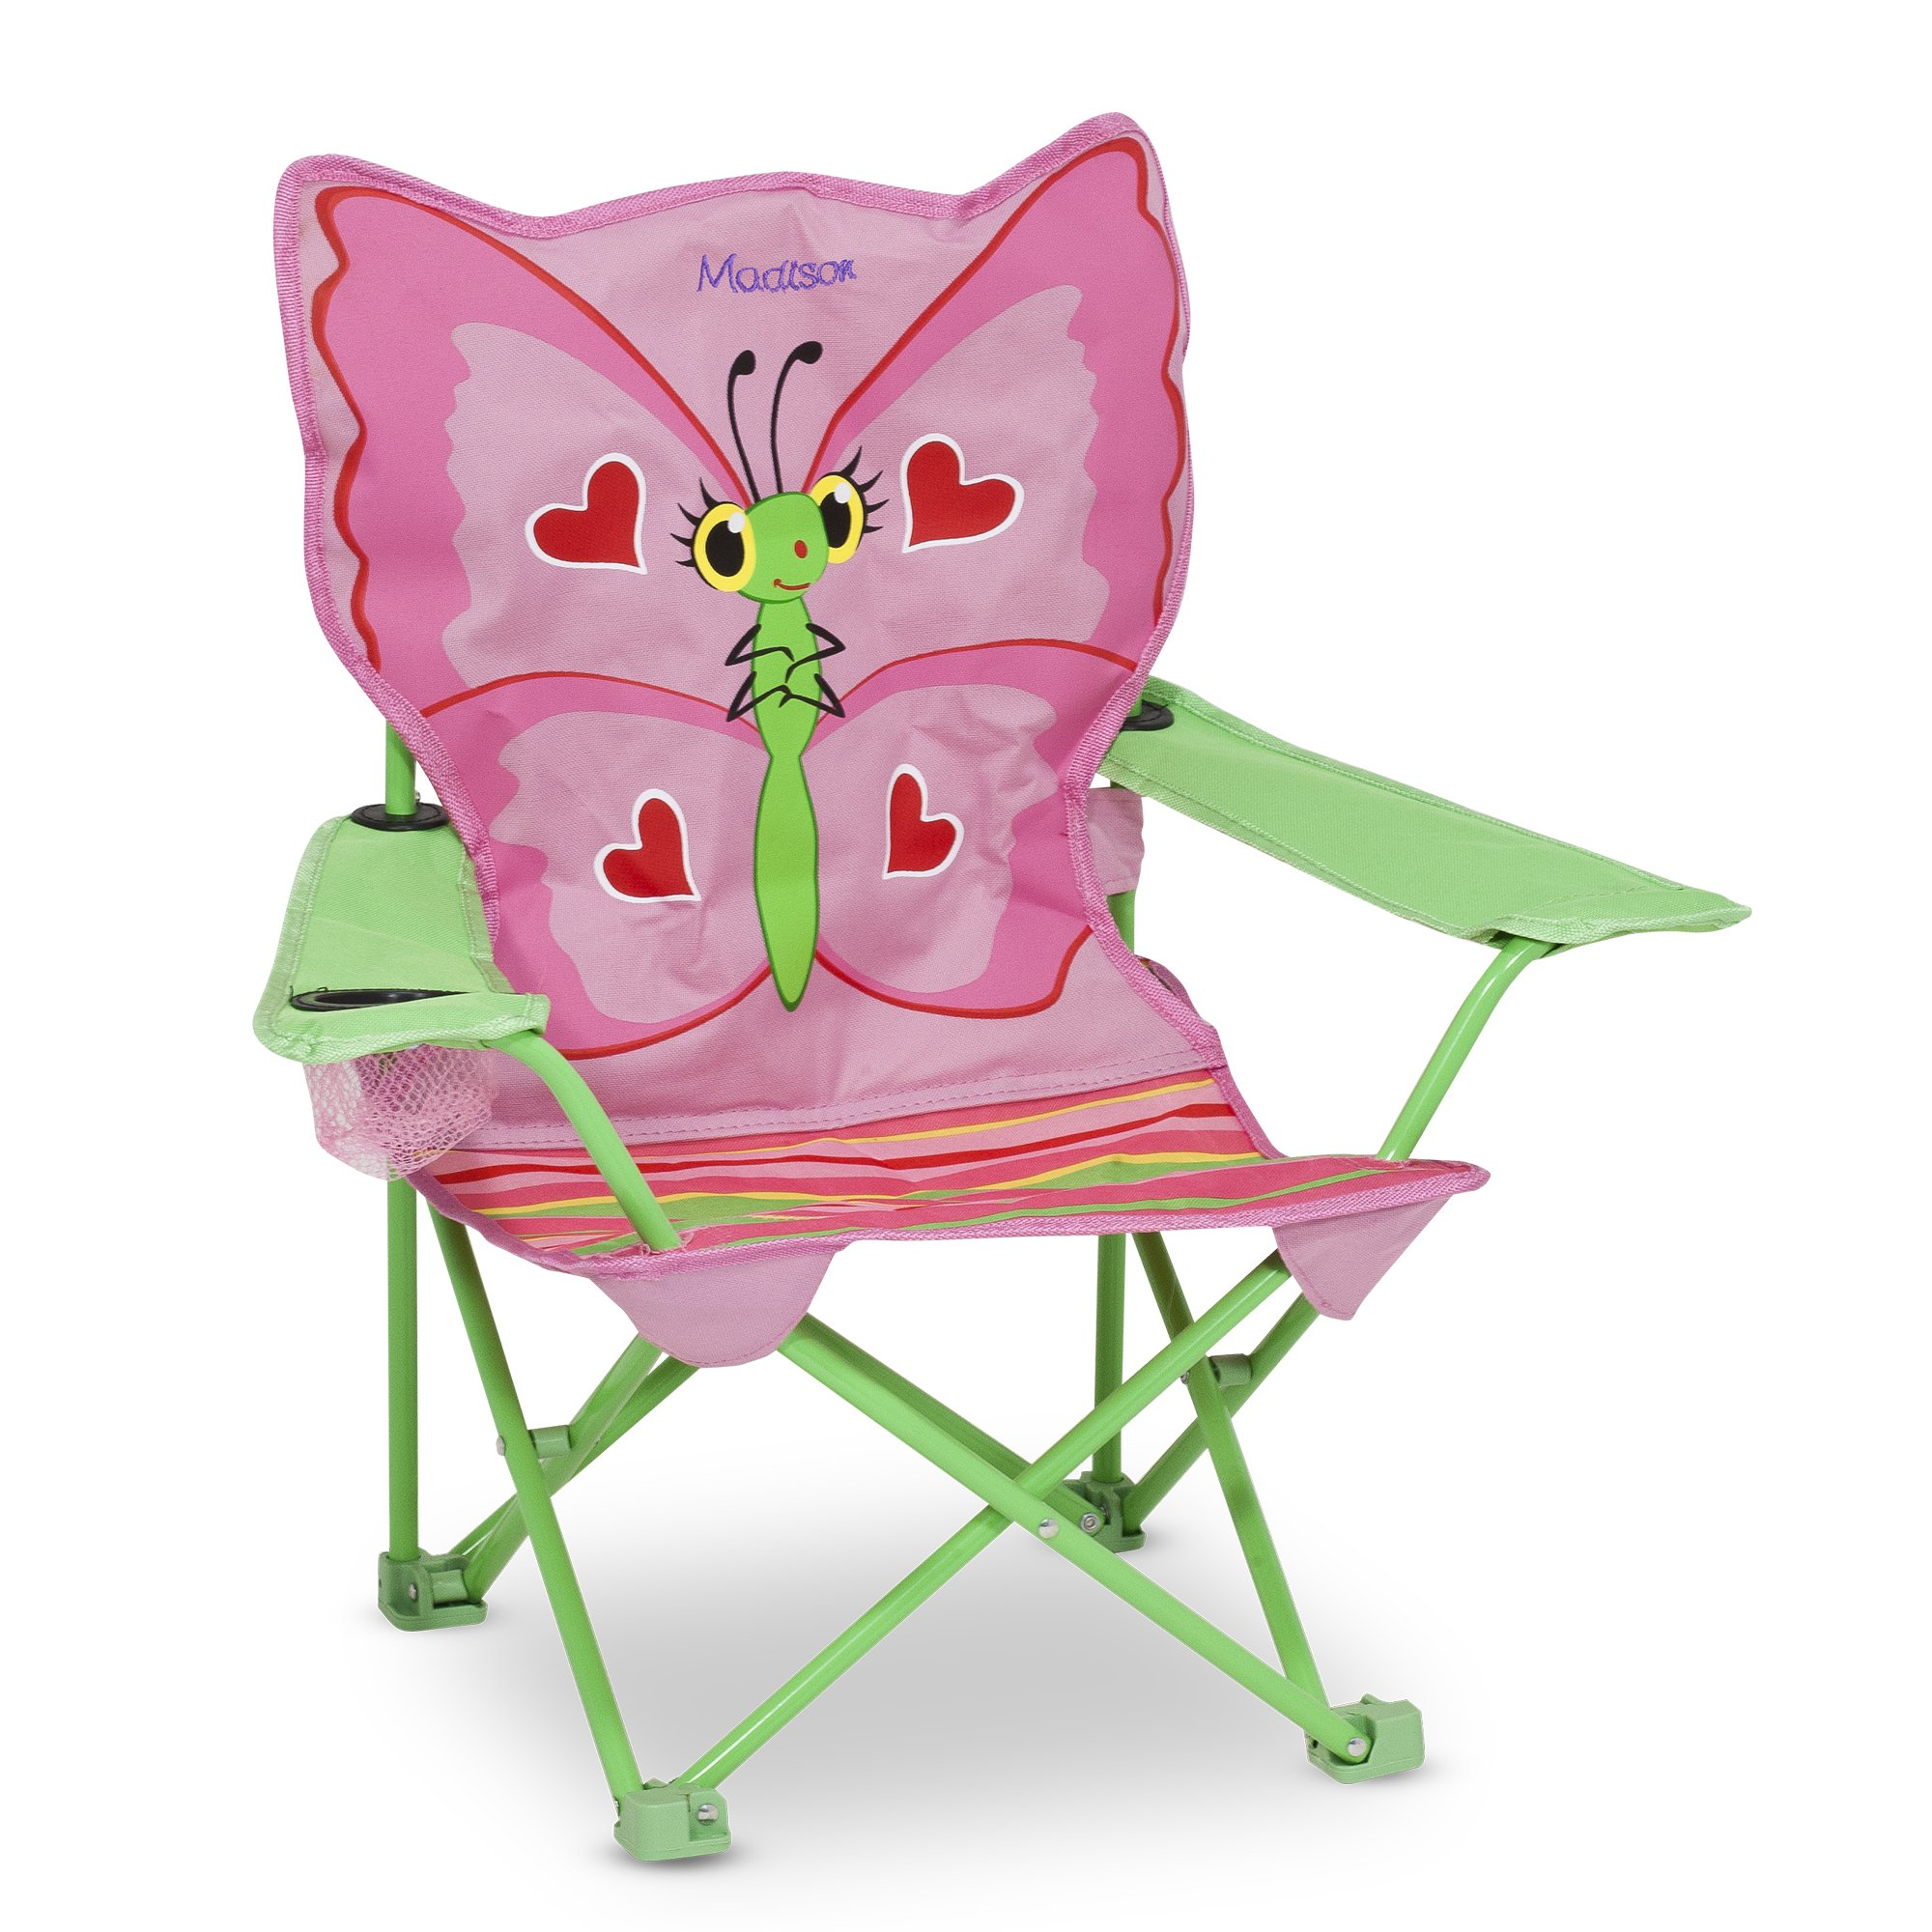 Melissa & Doug Personalized Sunny Patch Bella Butterfly Outdoor Folding Lawn & Camping Chair by Melissa & Doug (Image #1)